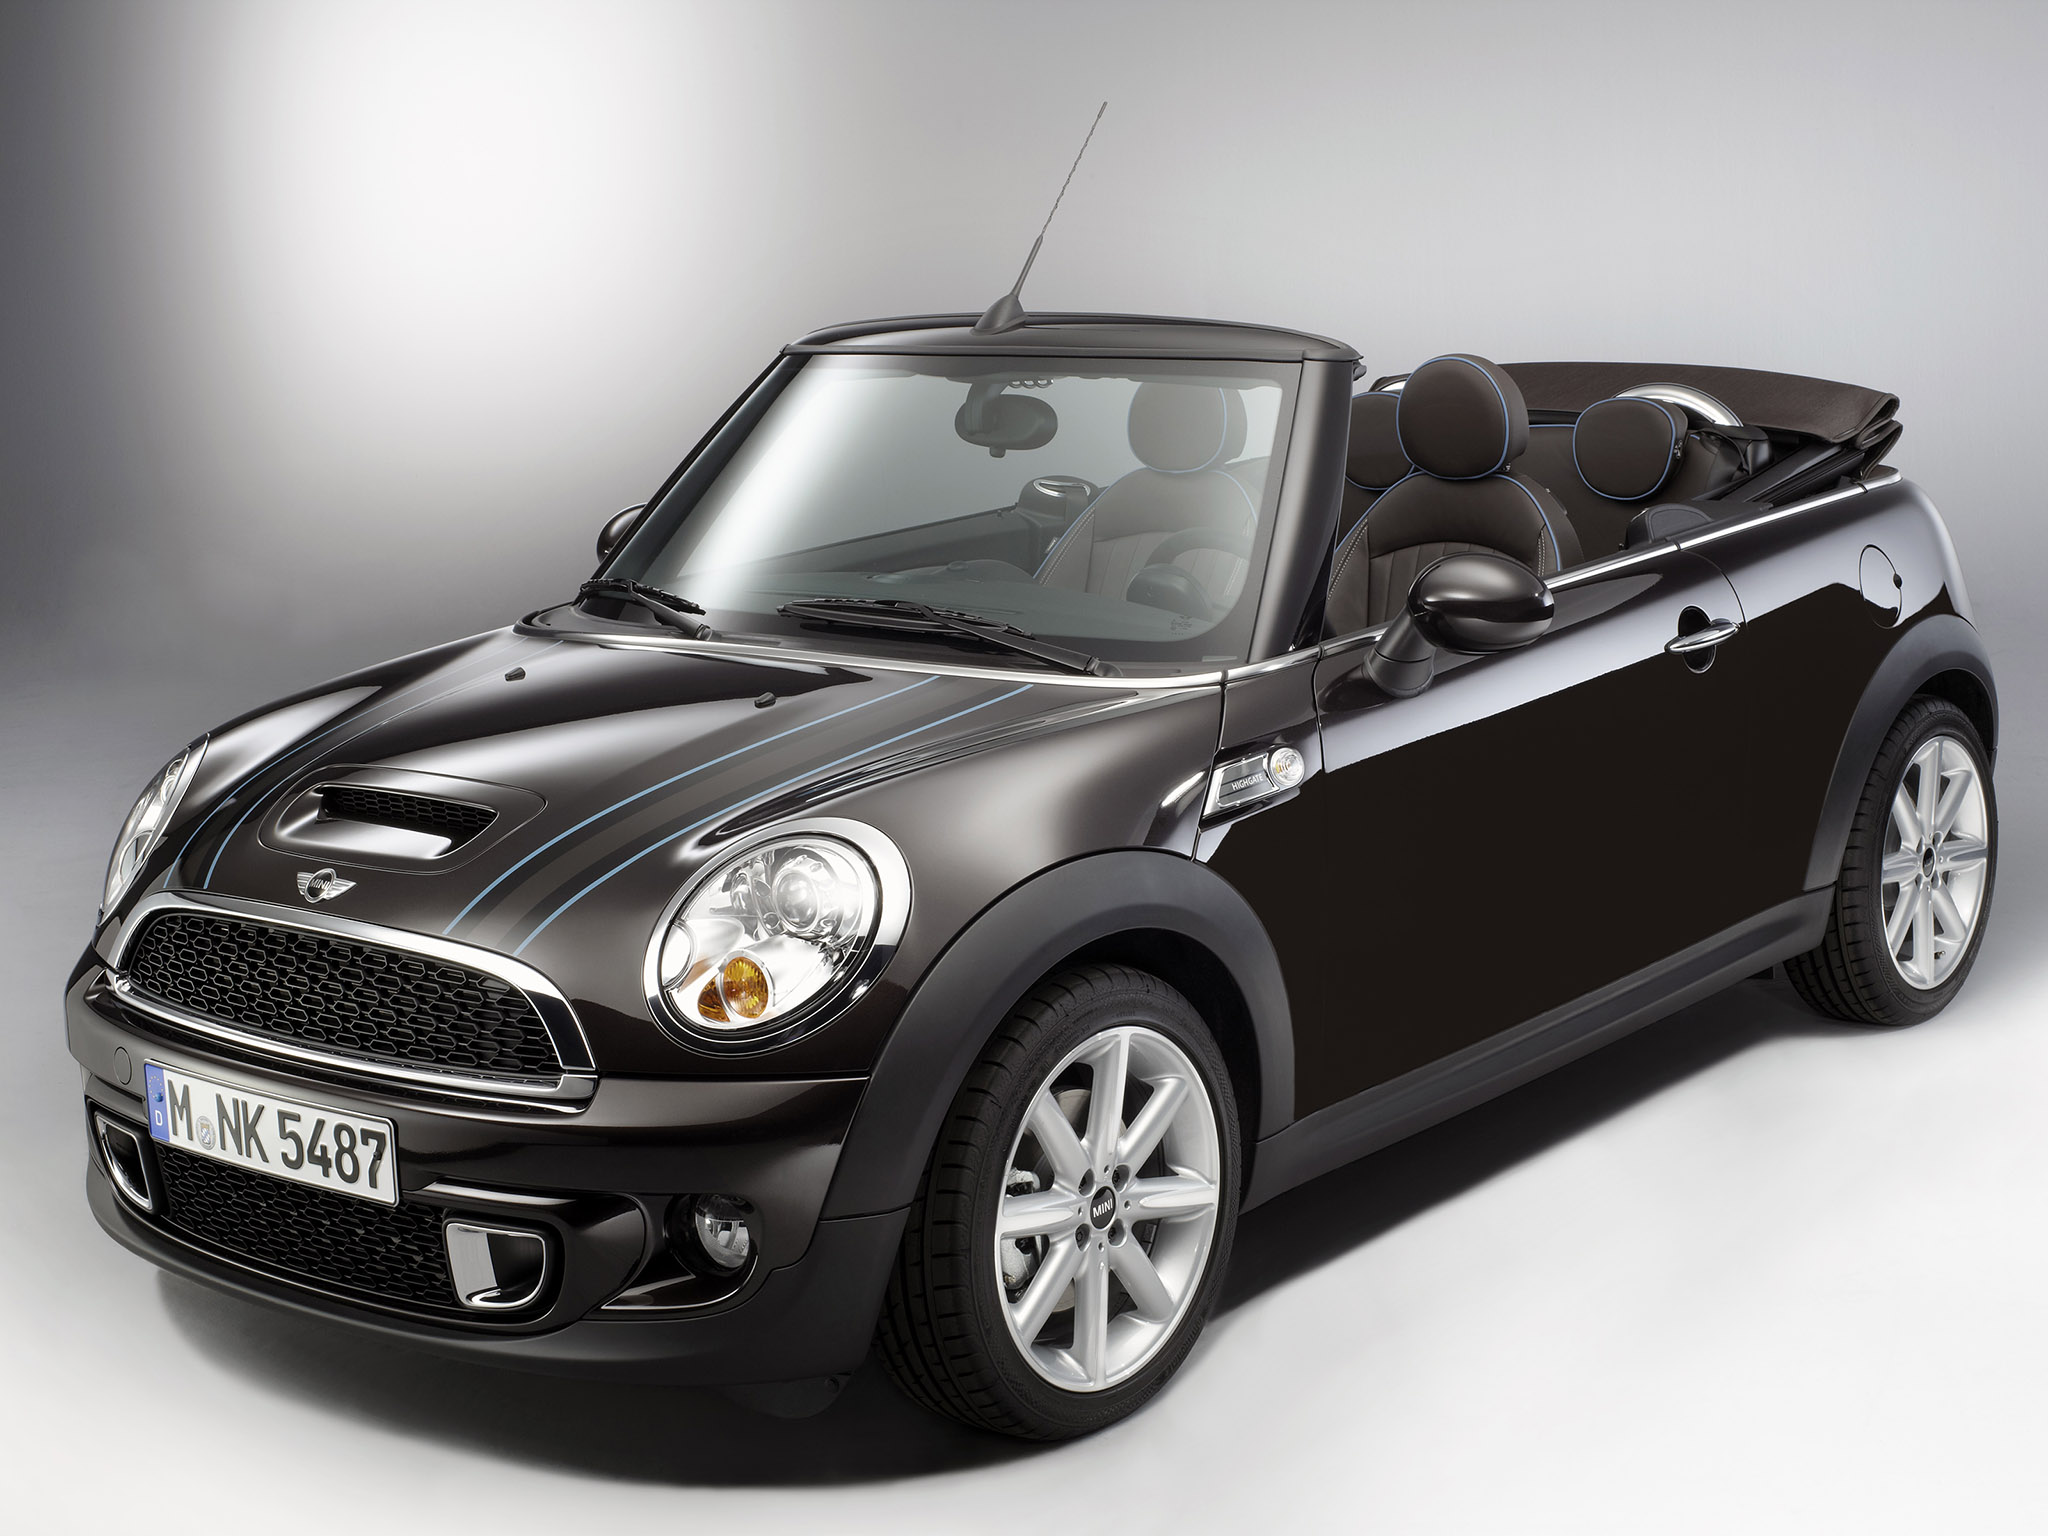 mini cooper s cabrio highgate 2012 mini cooper s cabrio. Black Bedroom Furniture Sets. Home Design Ideas